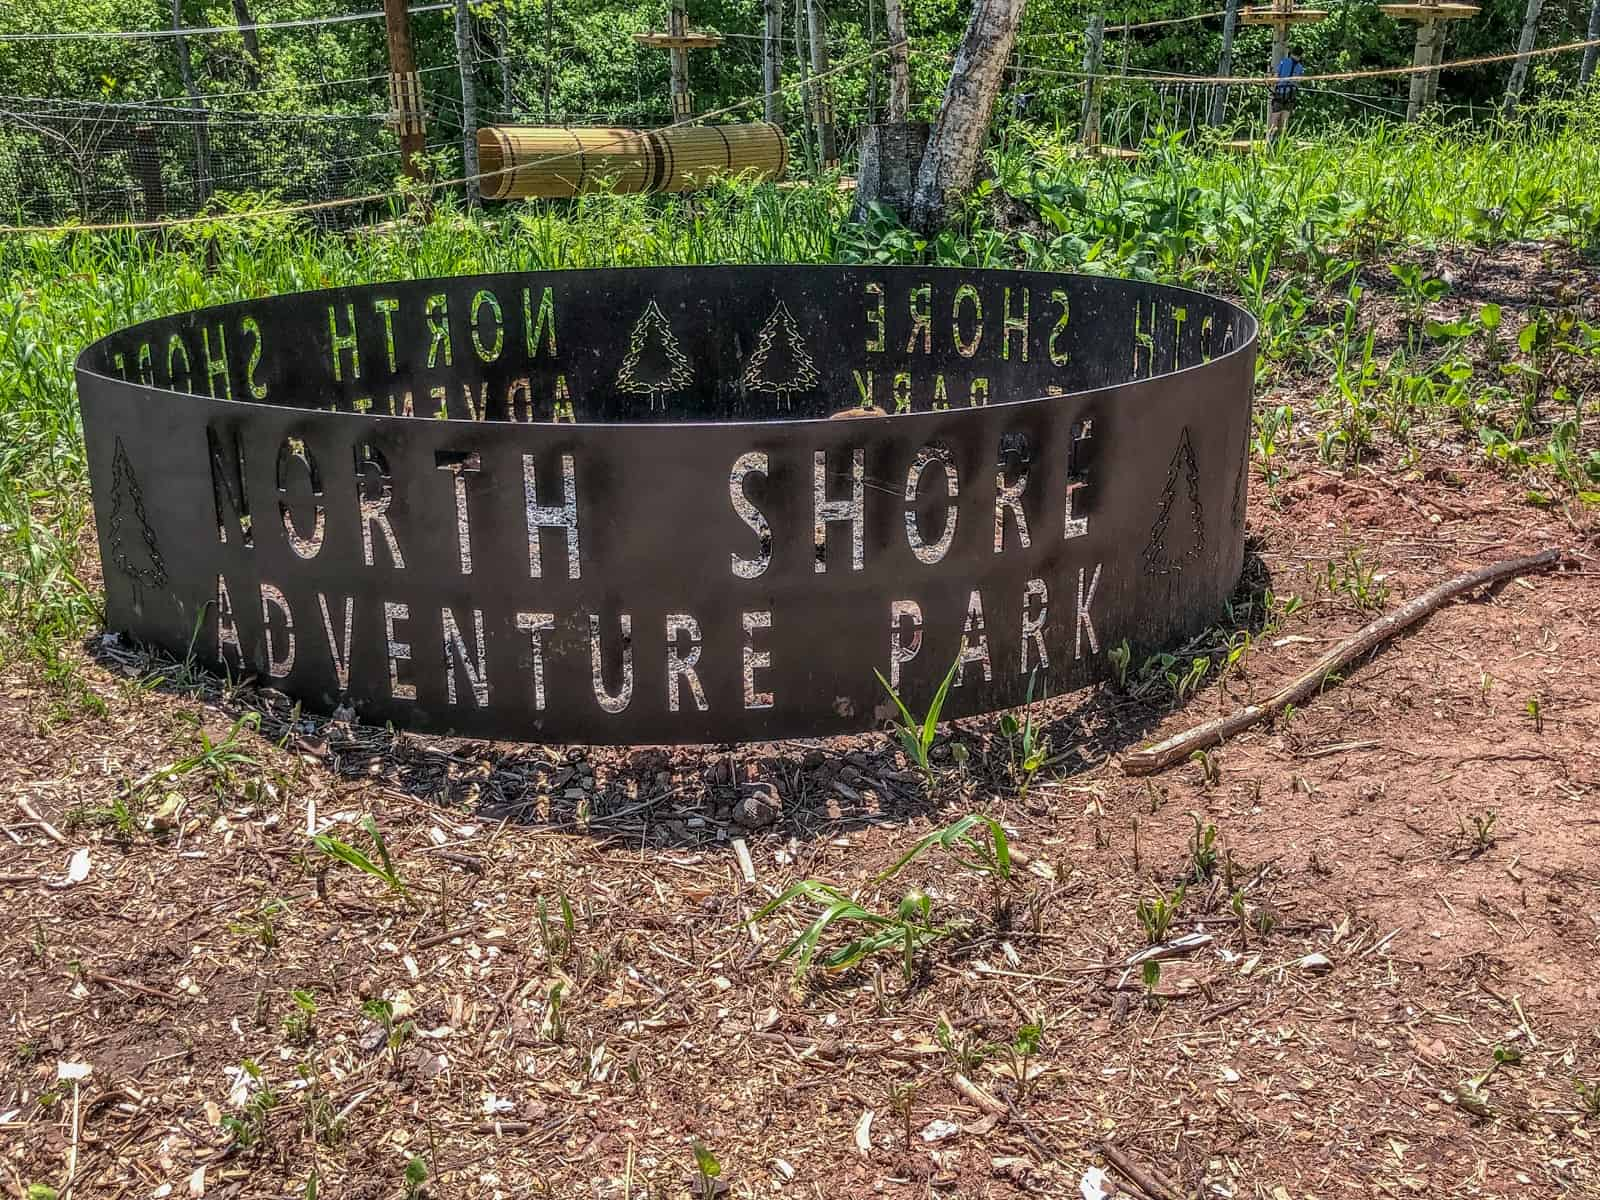 North Shore Adventure Park